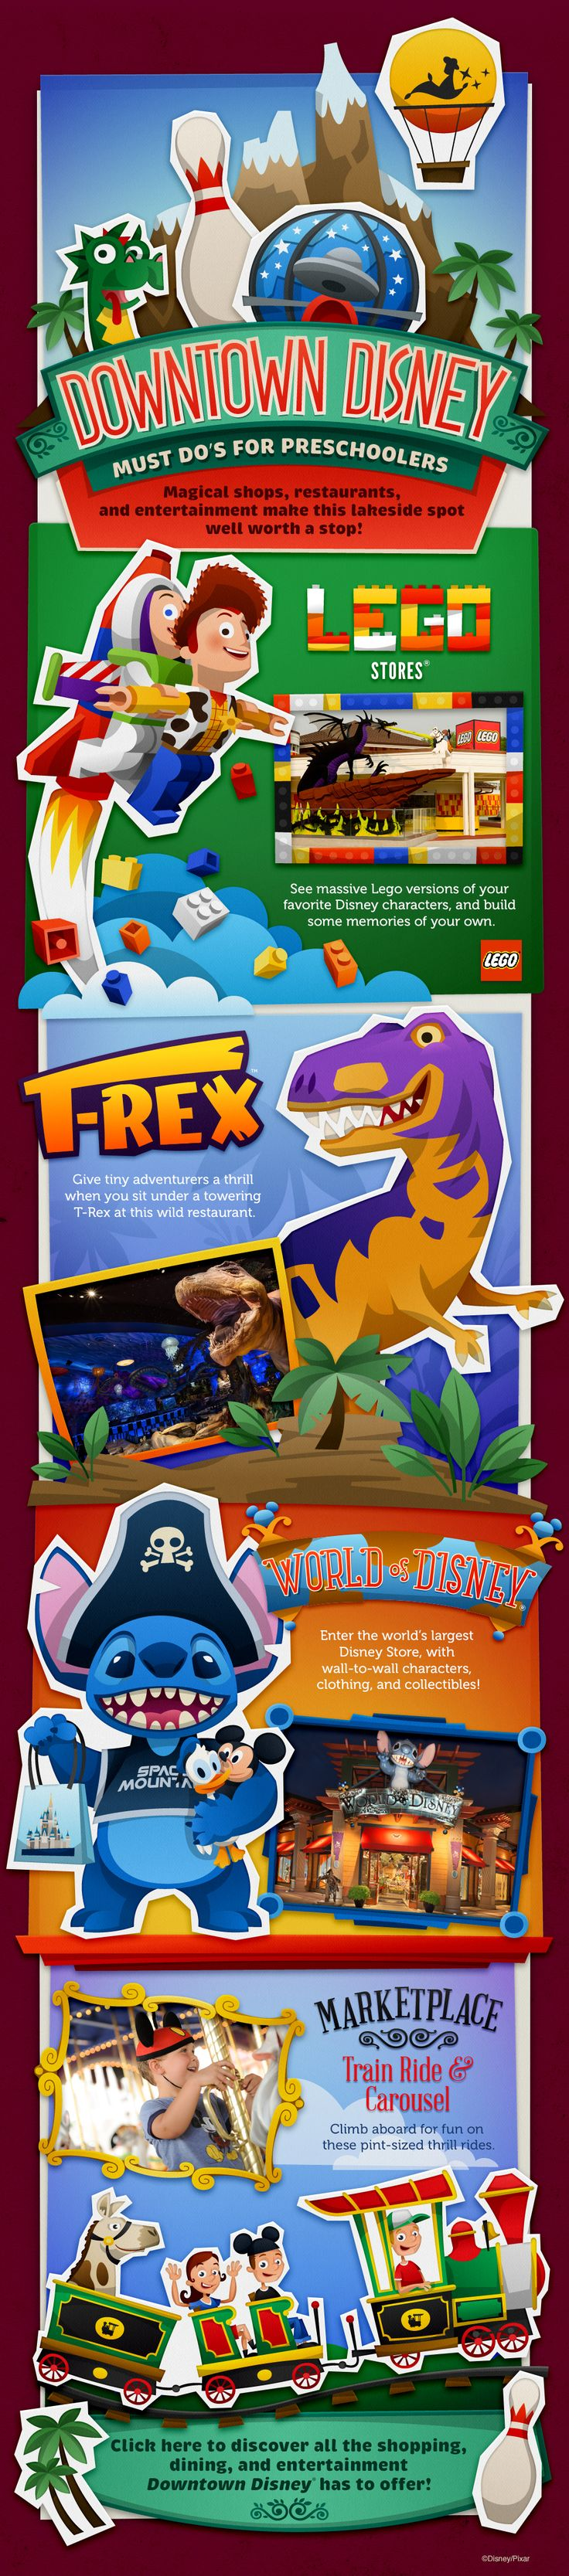 Downtown Disney Must Do's for Preschoolers! LEGO, T-REX, World of Disney, Marketplace Train Ride